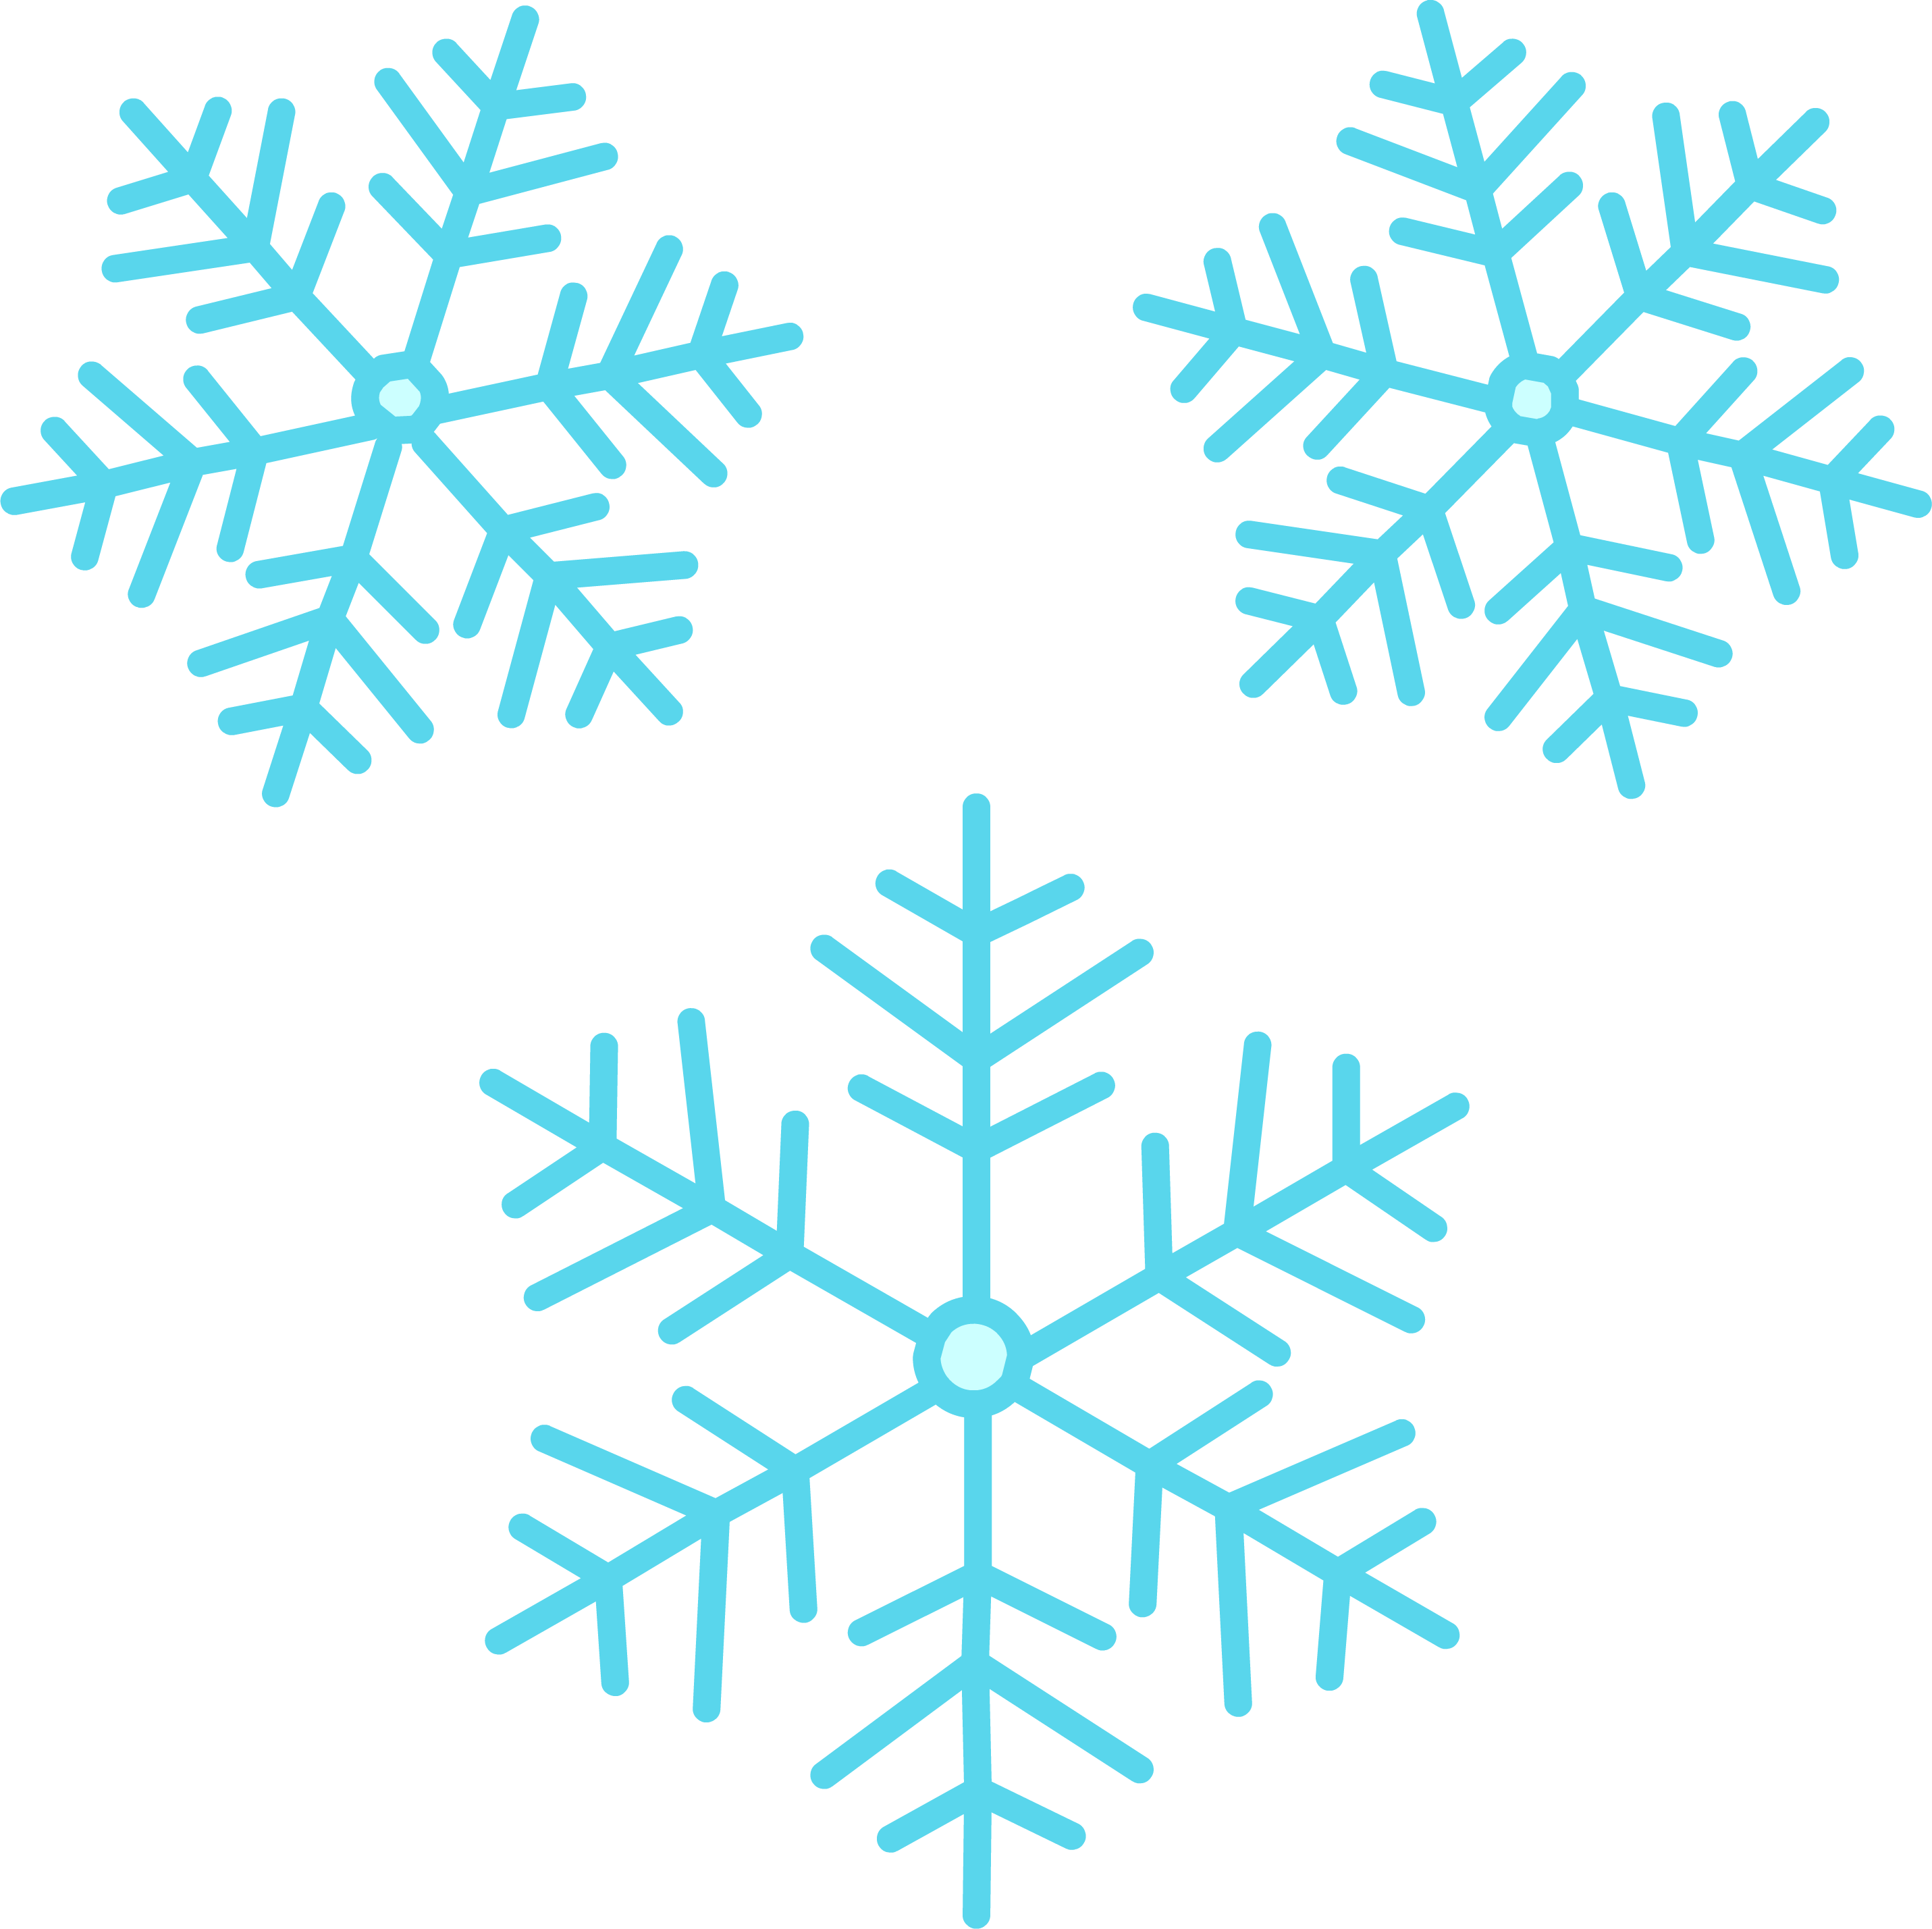 Snowflakes transparent png. Group stickpng download